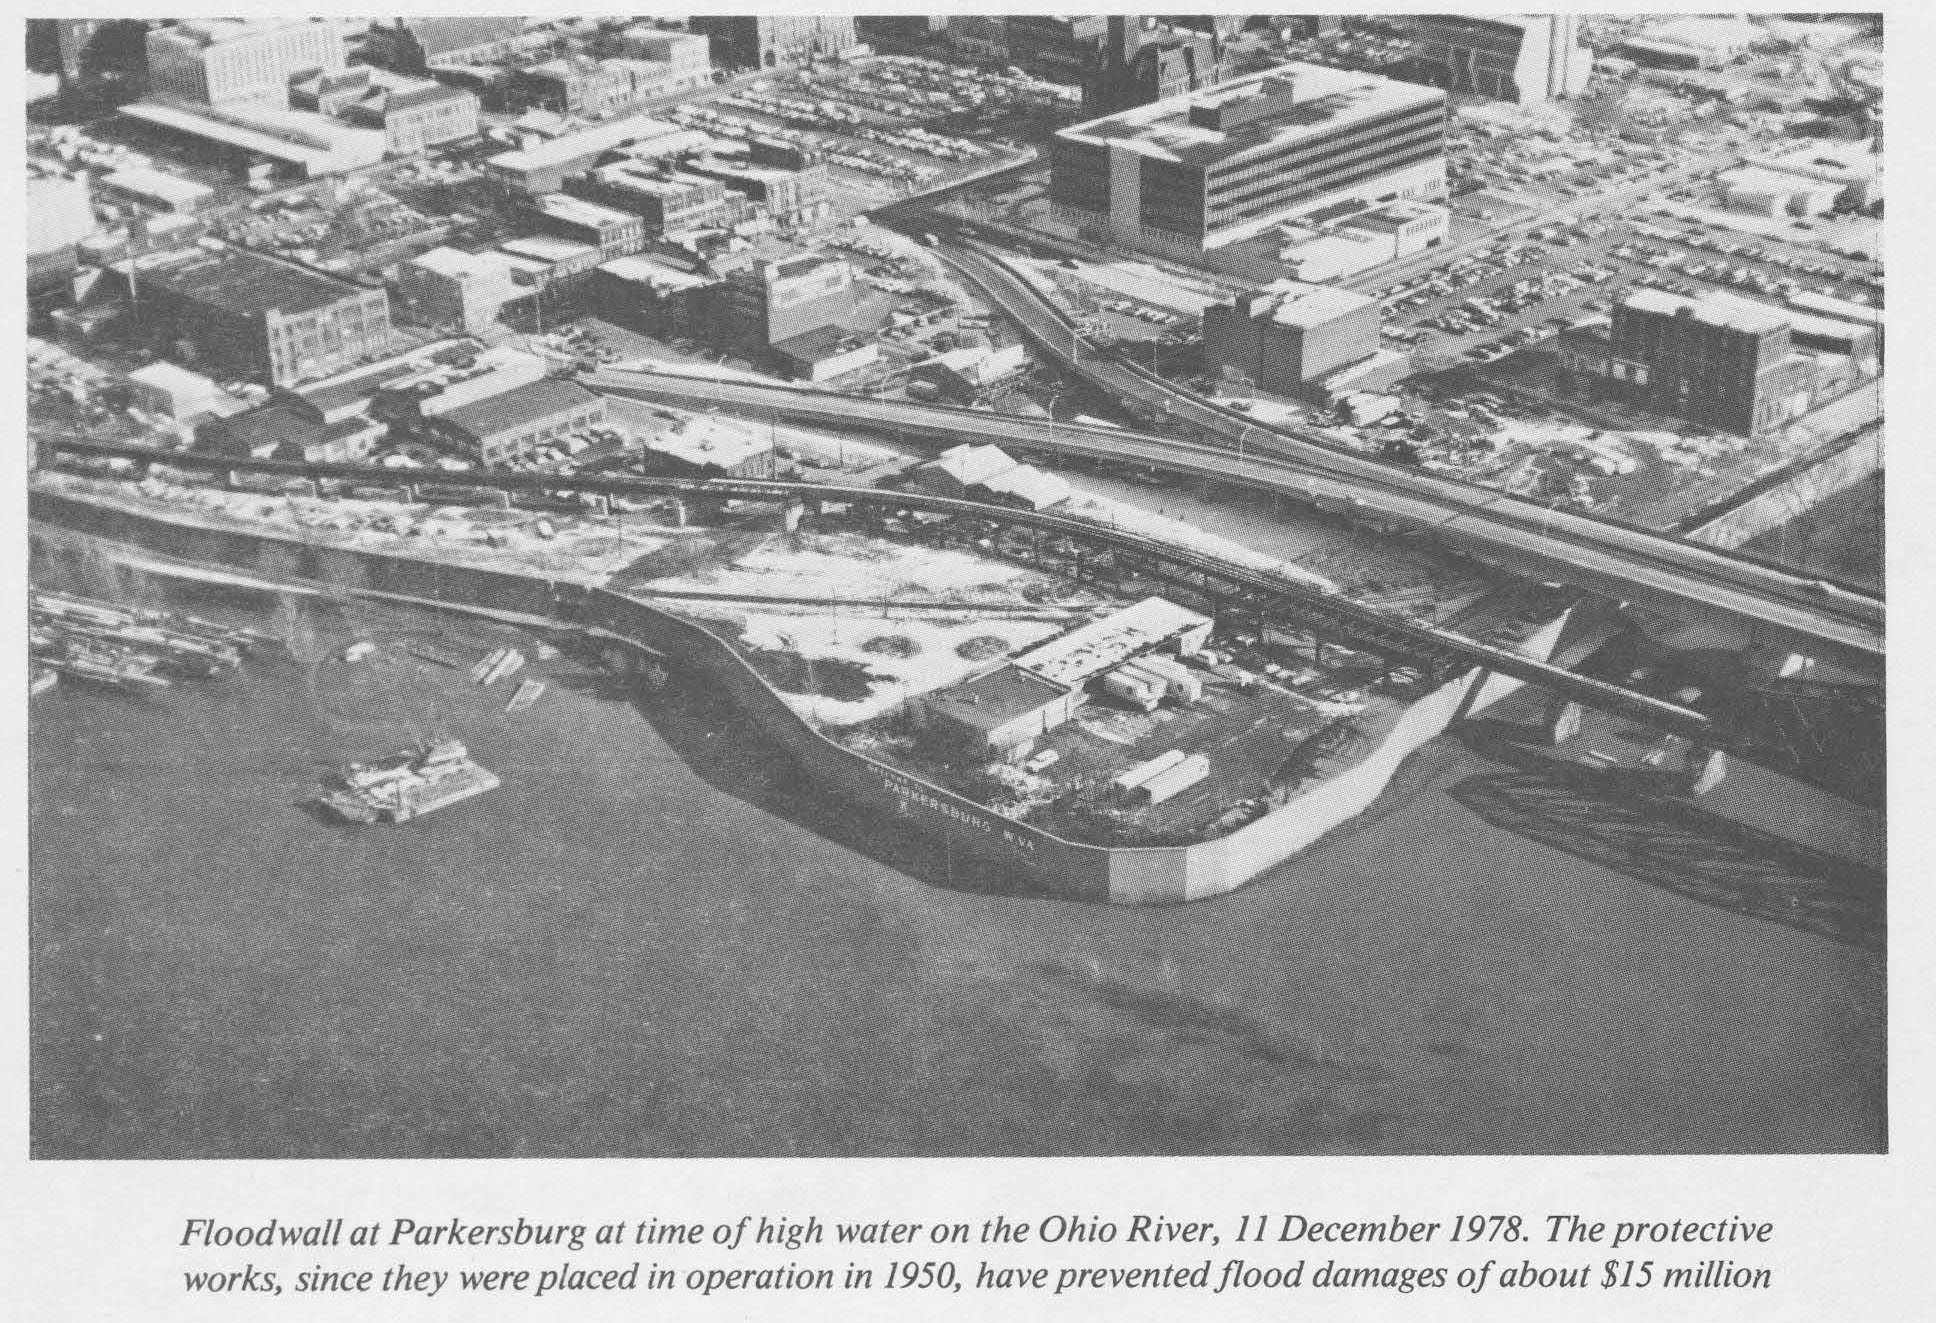 Aerial and caption from a 1979 report of activities in the Ohio Valley by the US Army Corps of Engineers. A later portion of the report states that damage prevented by the floodwall is estimated at over $18 million.